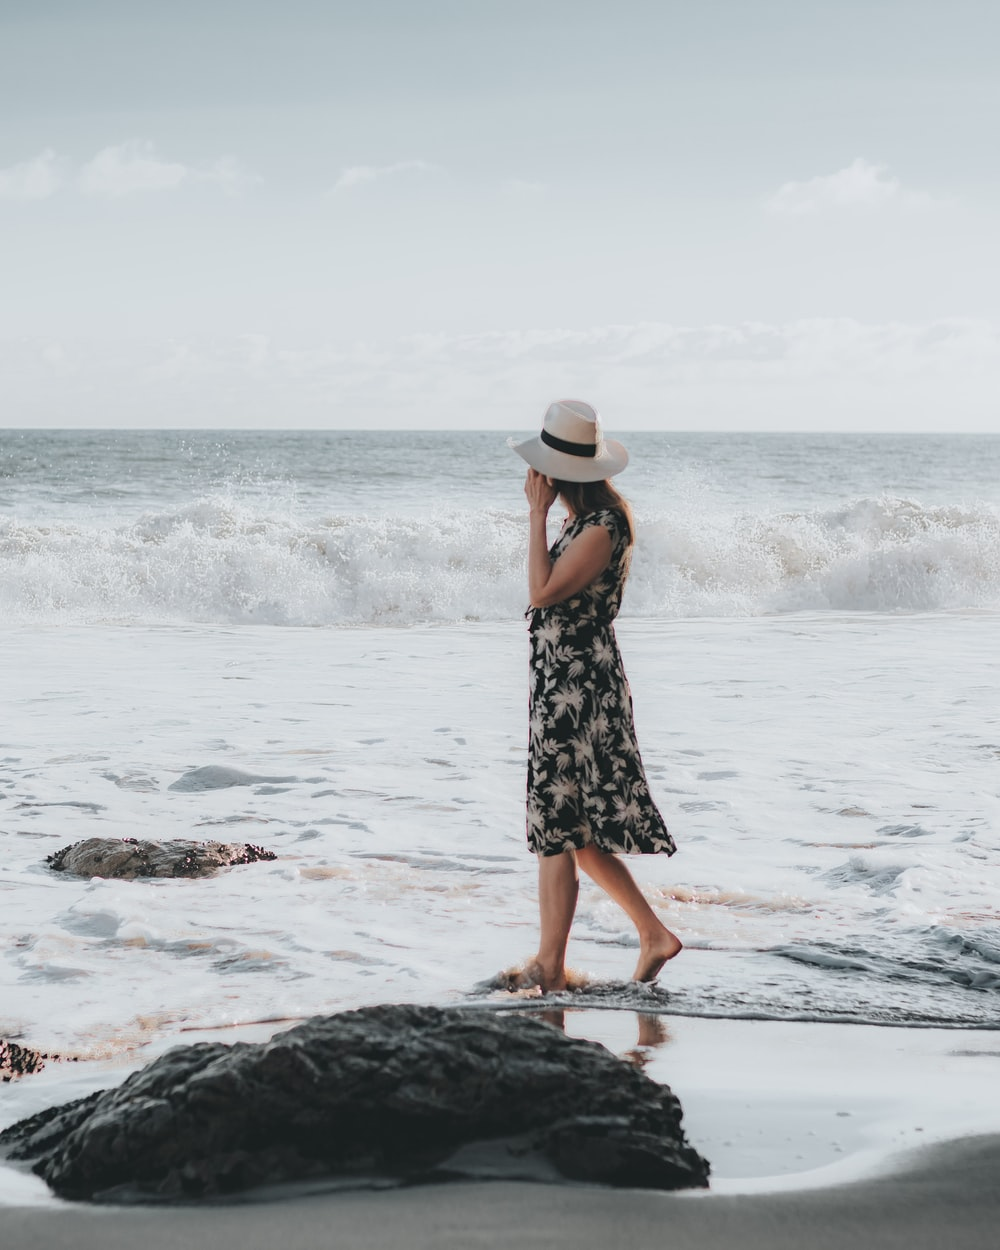 woman in black and white floral dress standing on sea shore during daytime